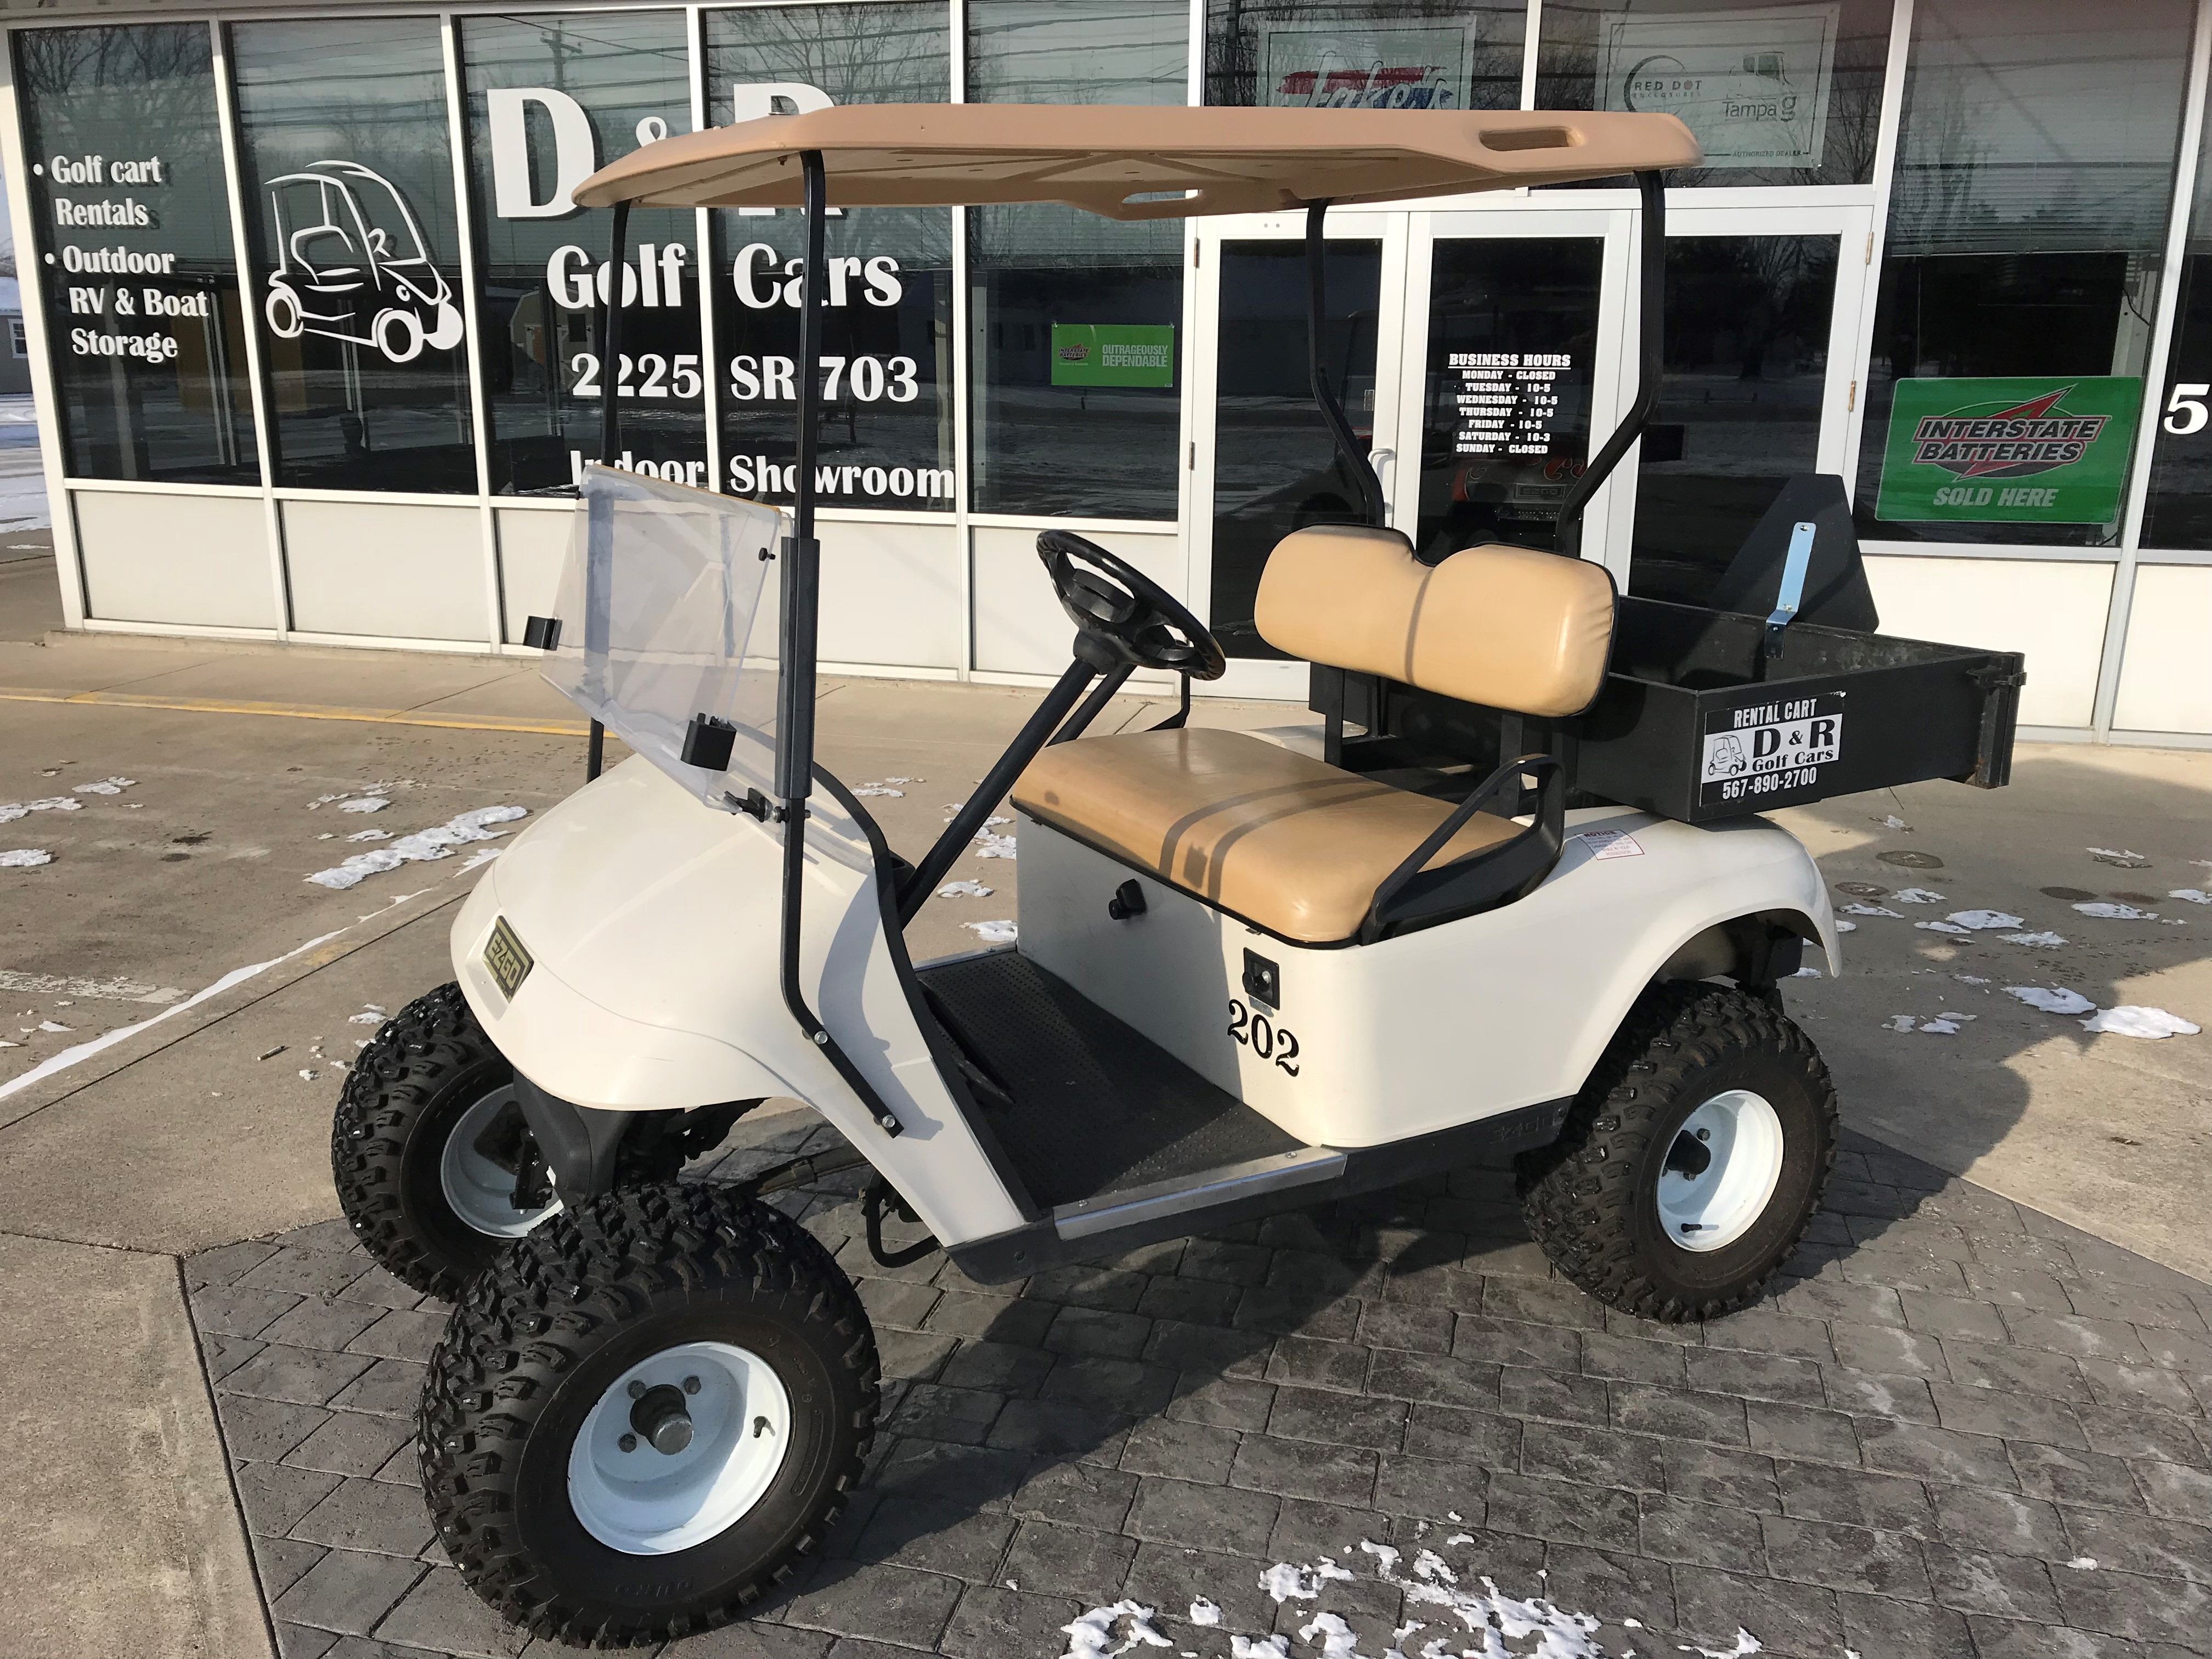 Golf Carts for Sale, Celina, OH - D & R Golf Cars on golf car boat, shoes boat, golf carts pull type,